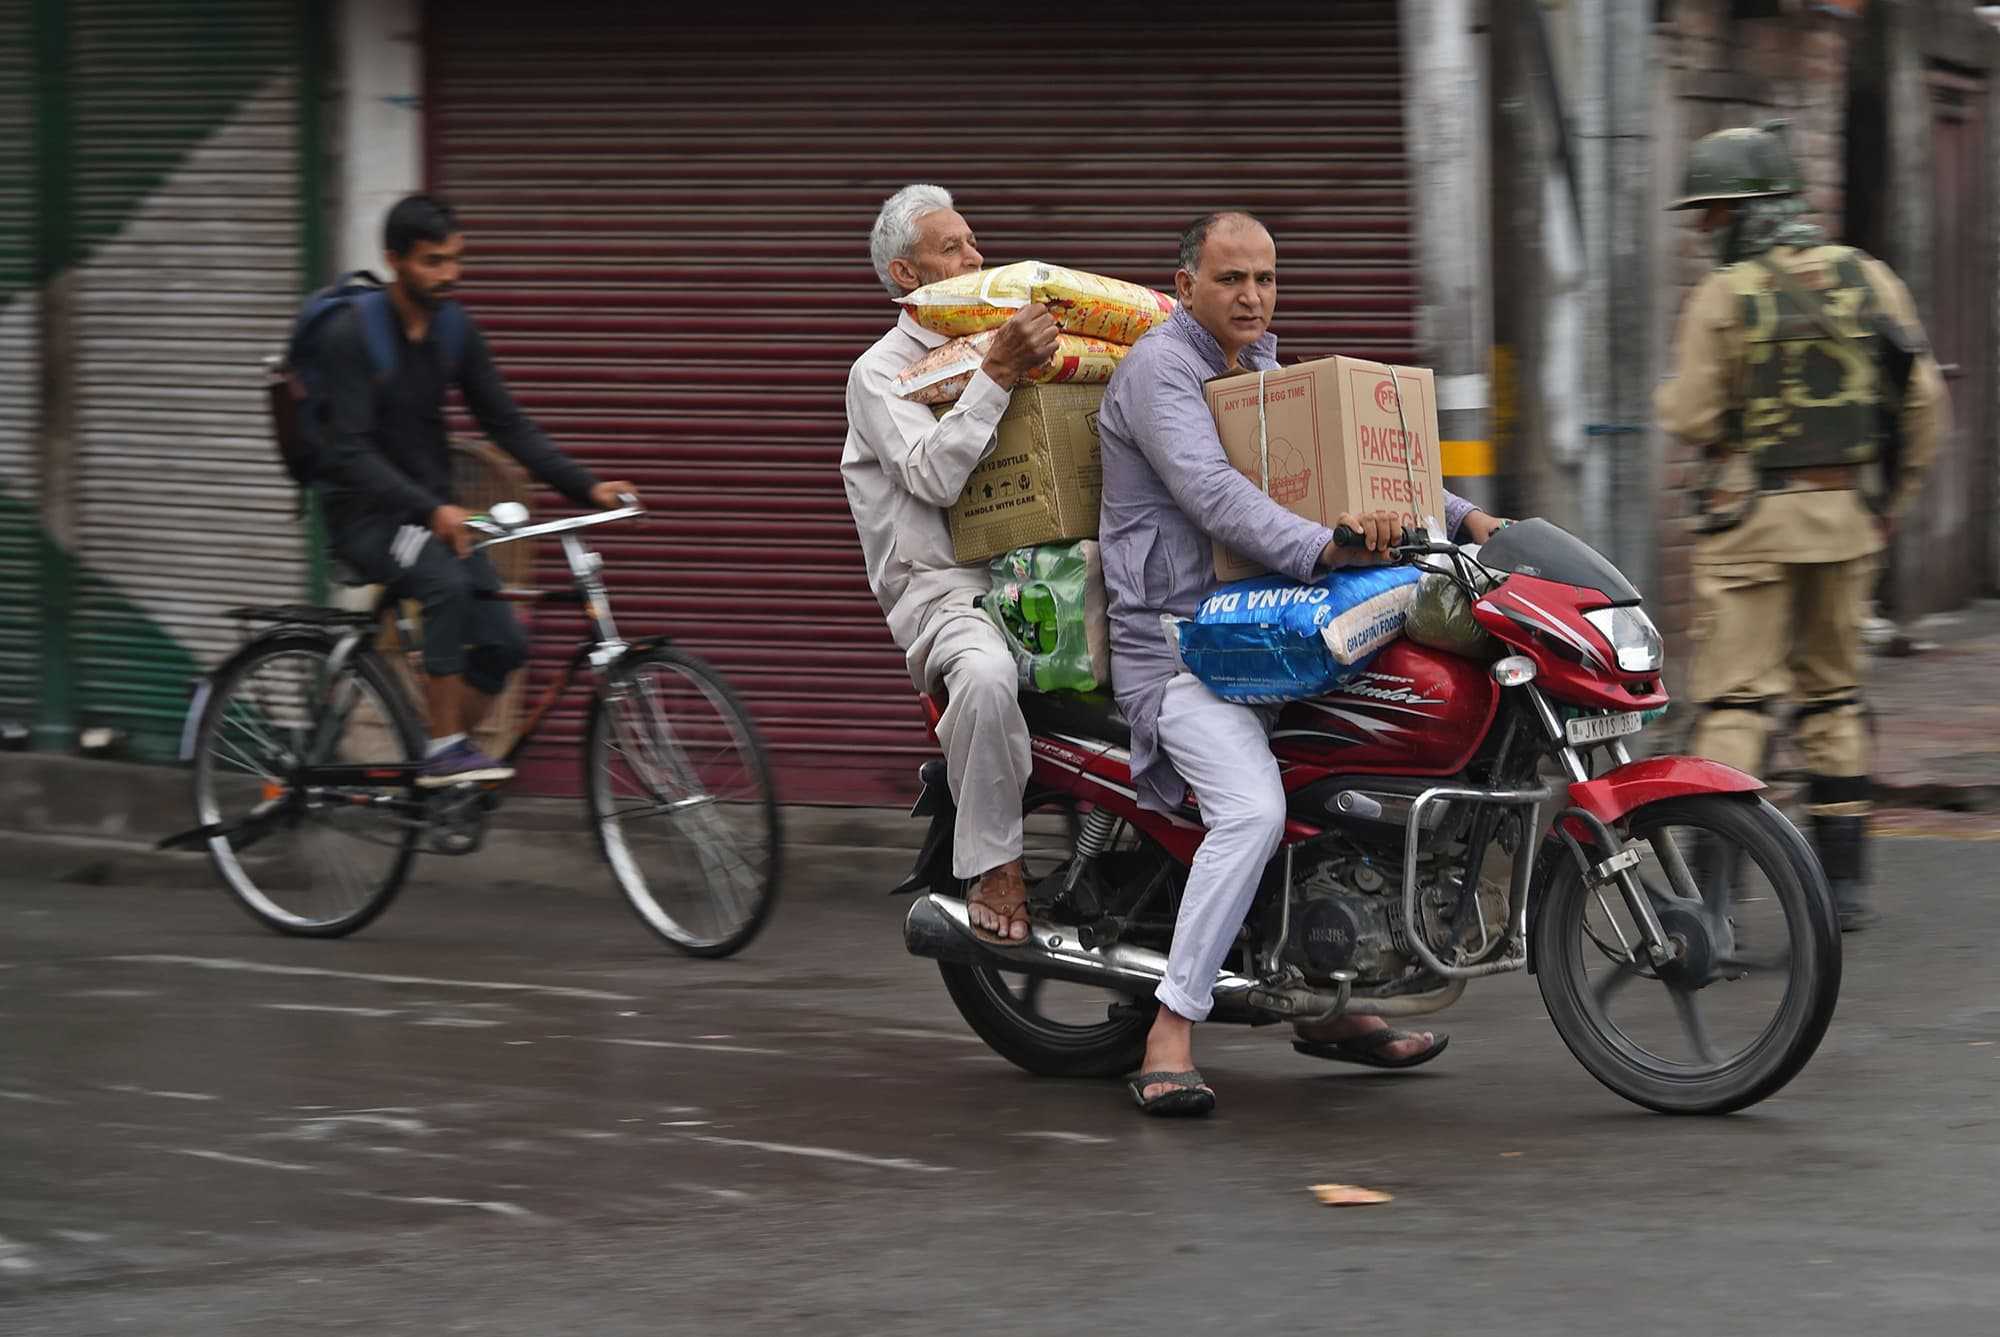 Two men ride a motorcycle as they carry packages of food during a lockdown and curfew in Srinagar. ─ AFP